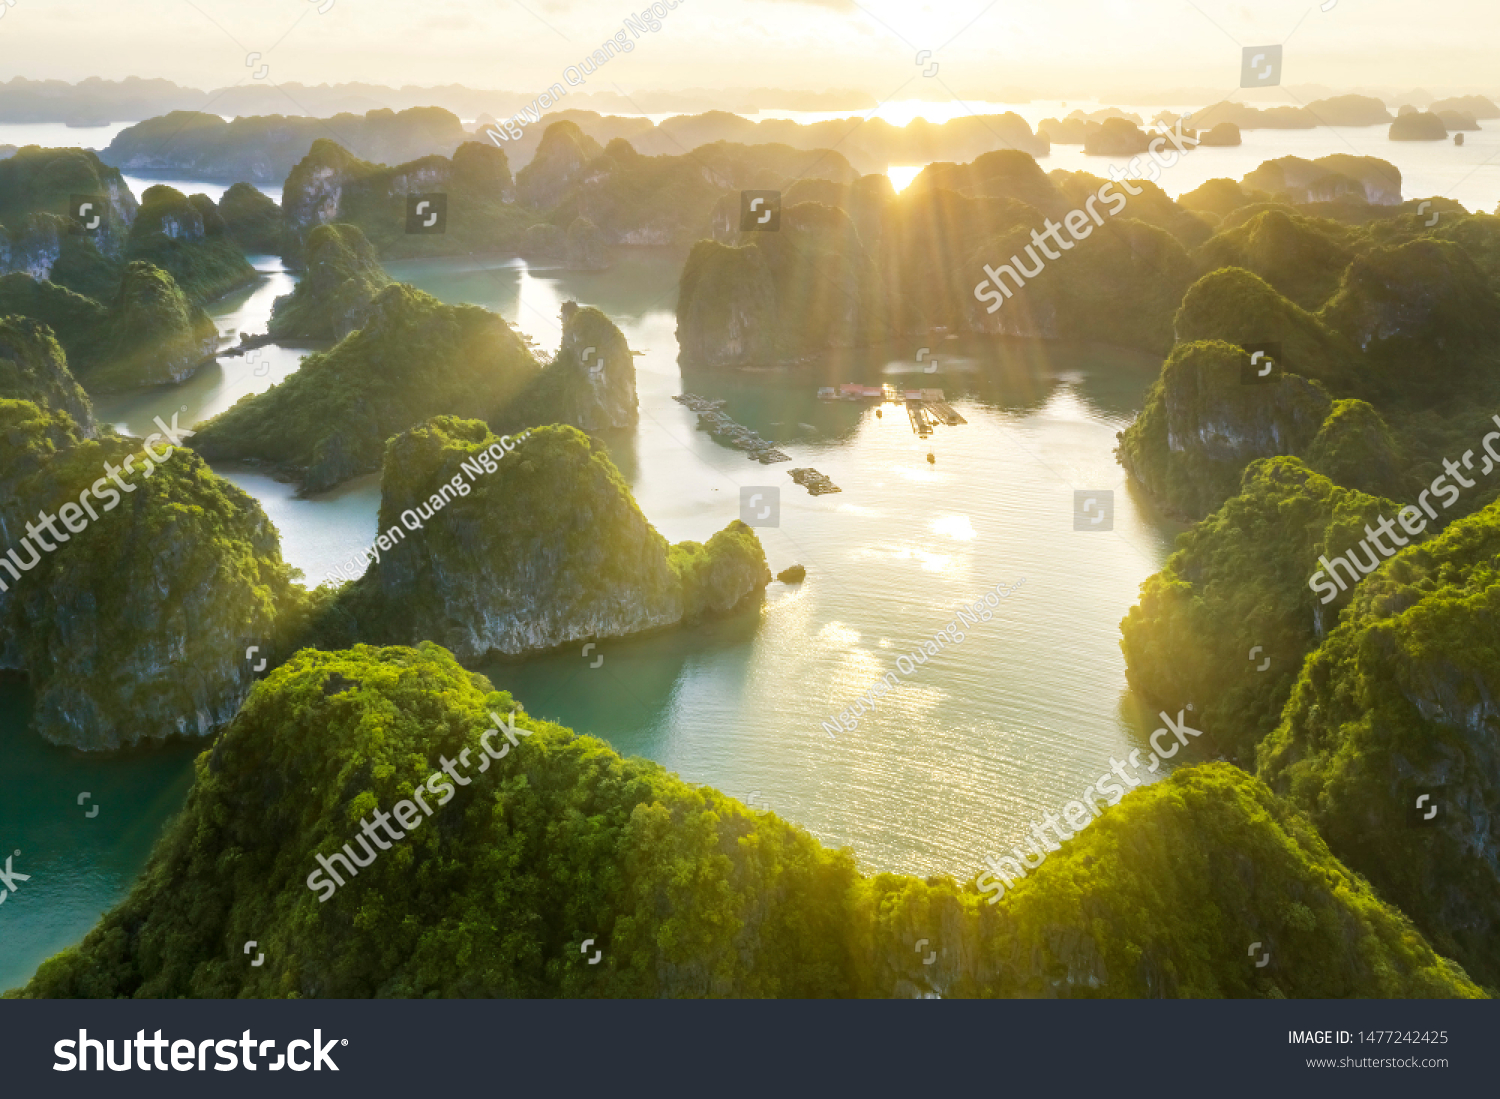 Aerial view Vung Vieng floating fishing village and rock island, Halong Bay, Vietnam, Southeast Asia. UNESCO World Heritage Site. Junk boat cruise to Ha Long Bay. Famous destination of Vietnam #1477242425